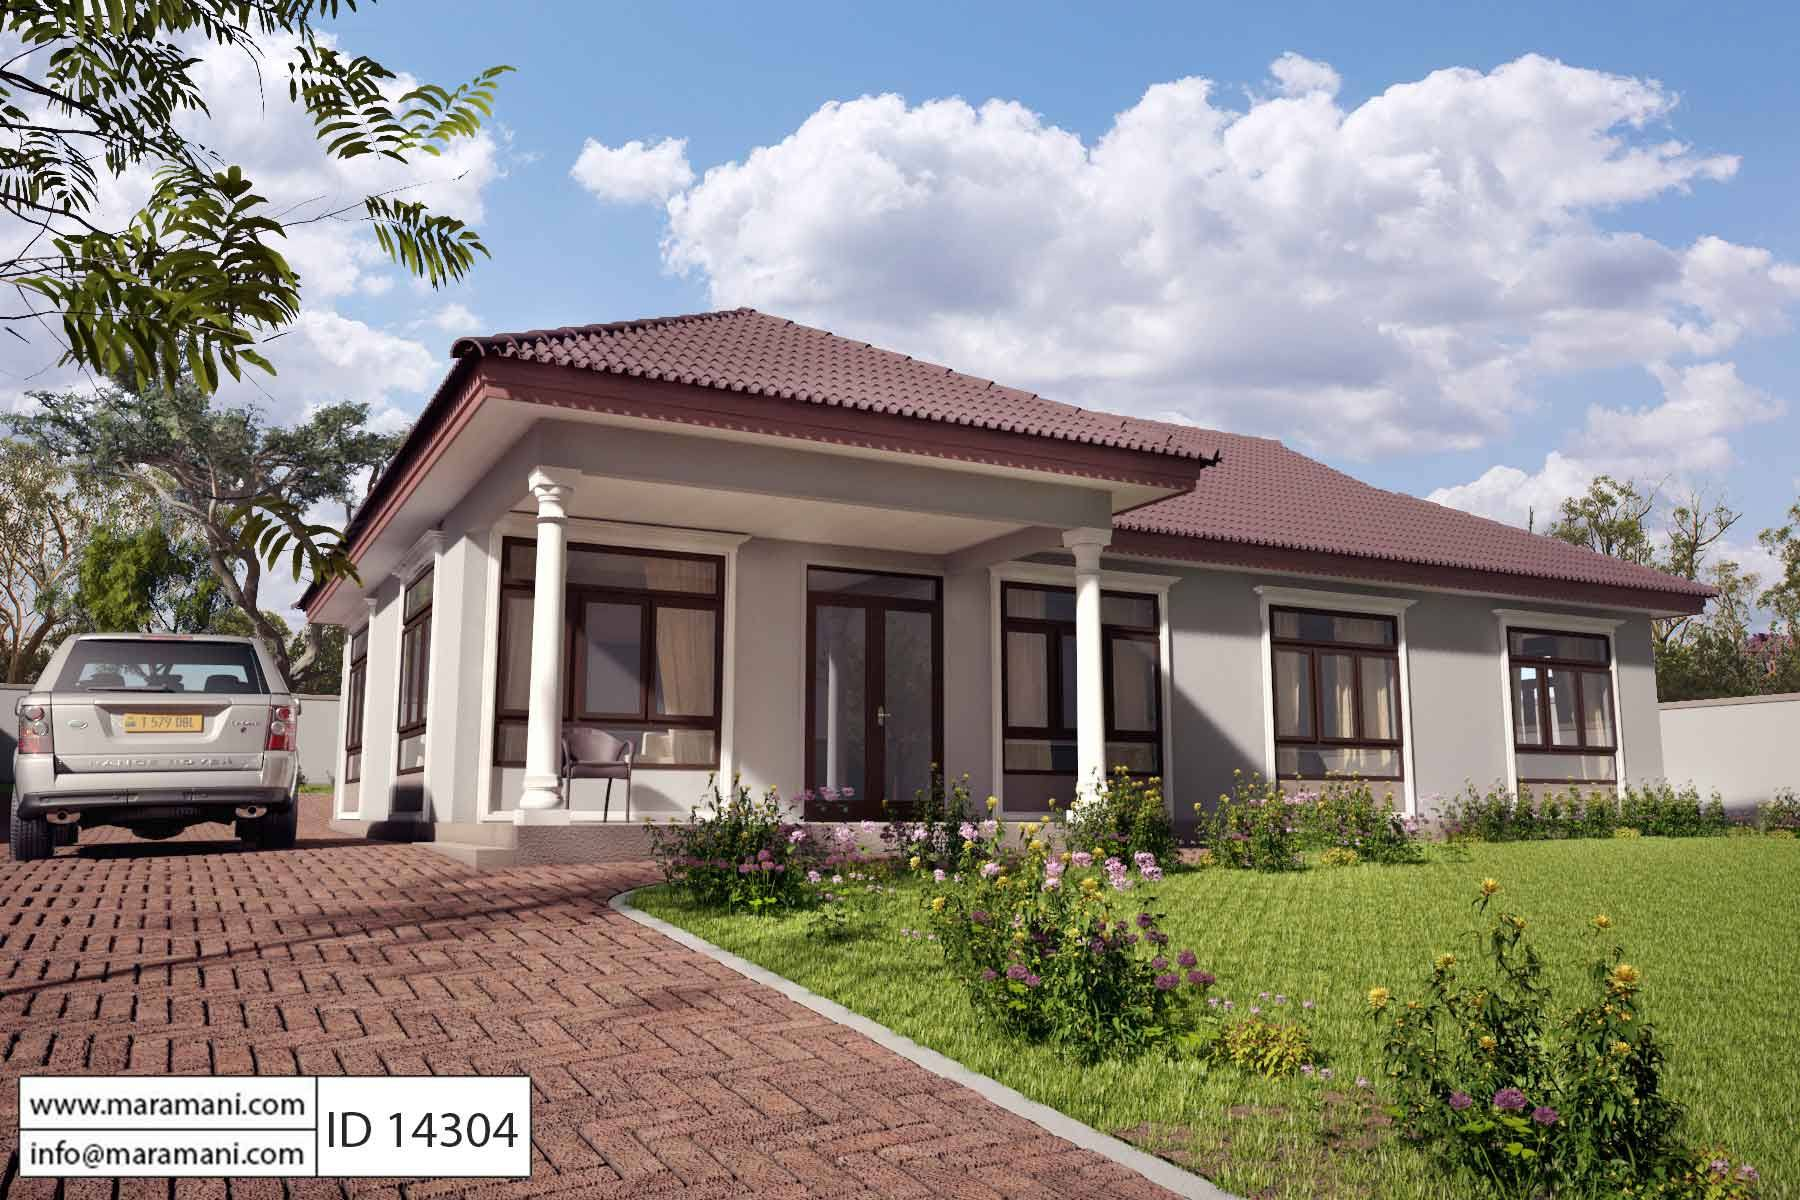 Attractive 4 Bedroom Single Story House Plan   ID 14304   House Plans By Maramani